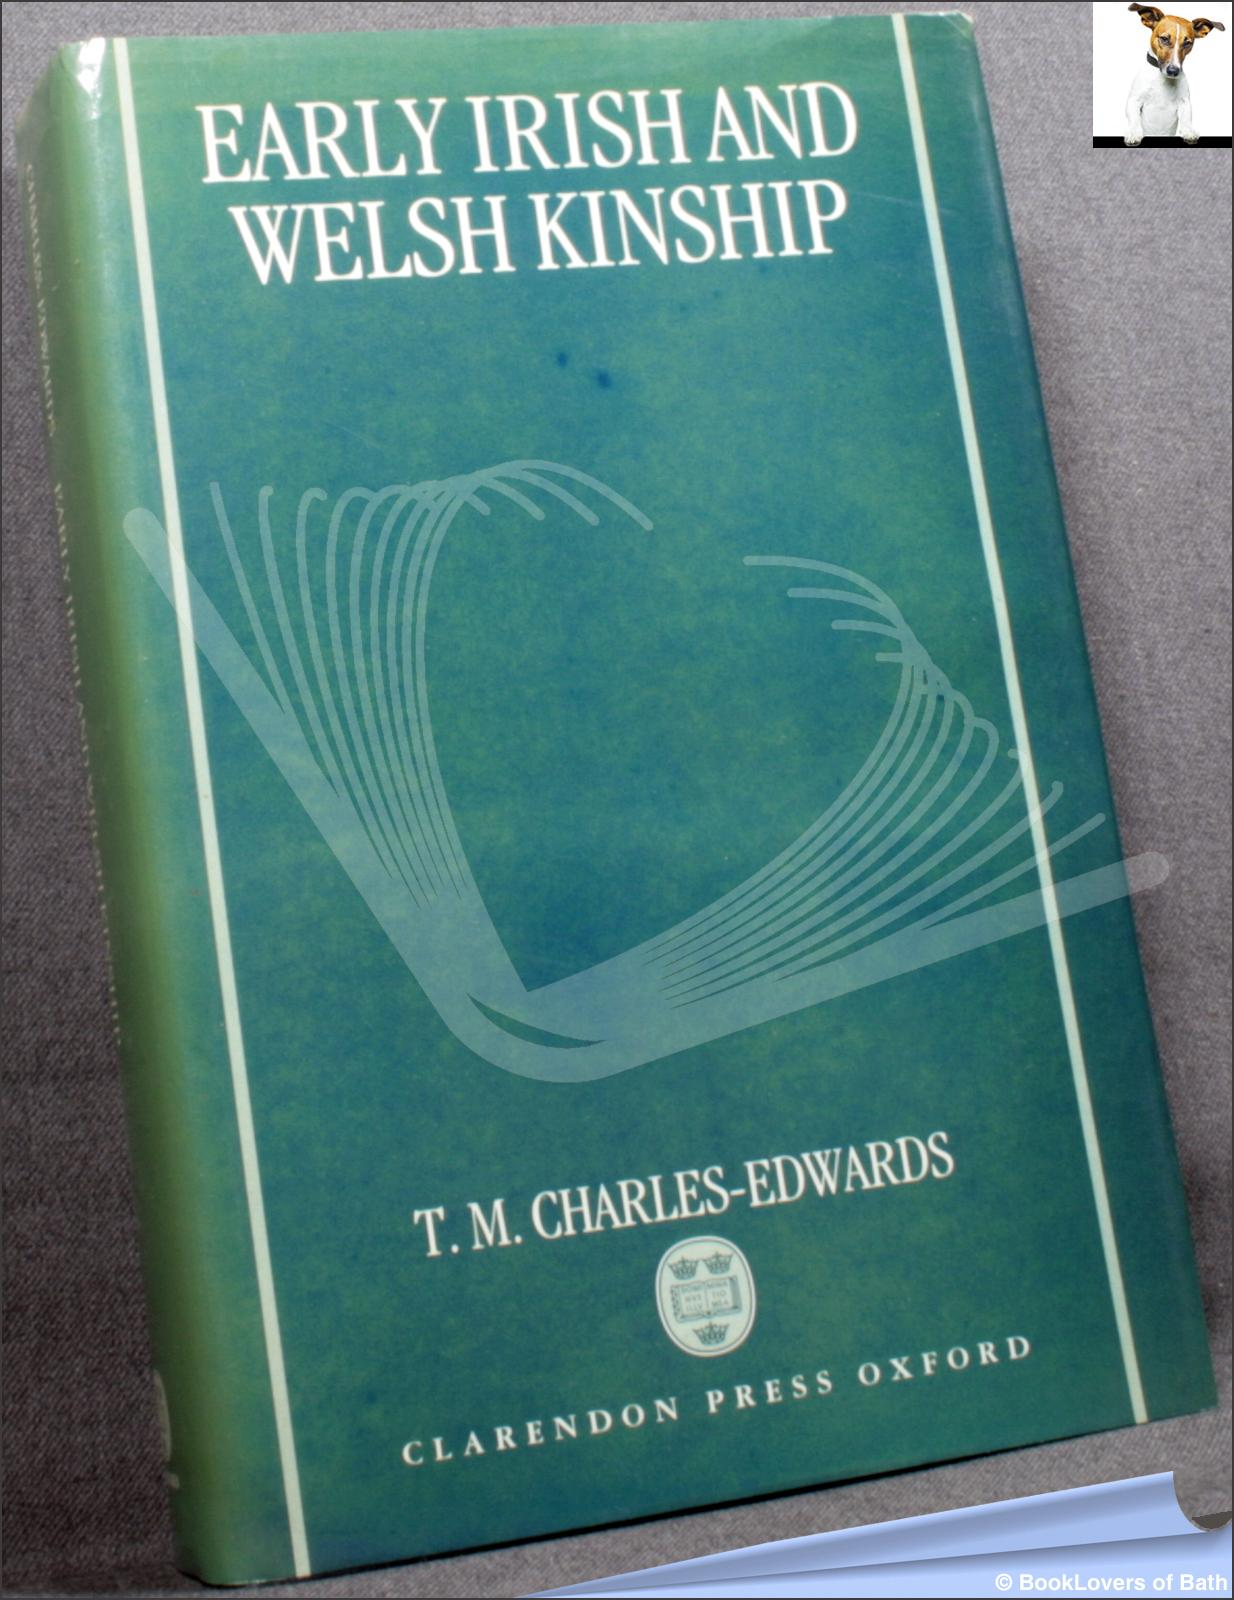 Early Irish and Welsh Kinship - T. M. Charles-Edwards